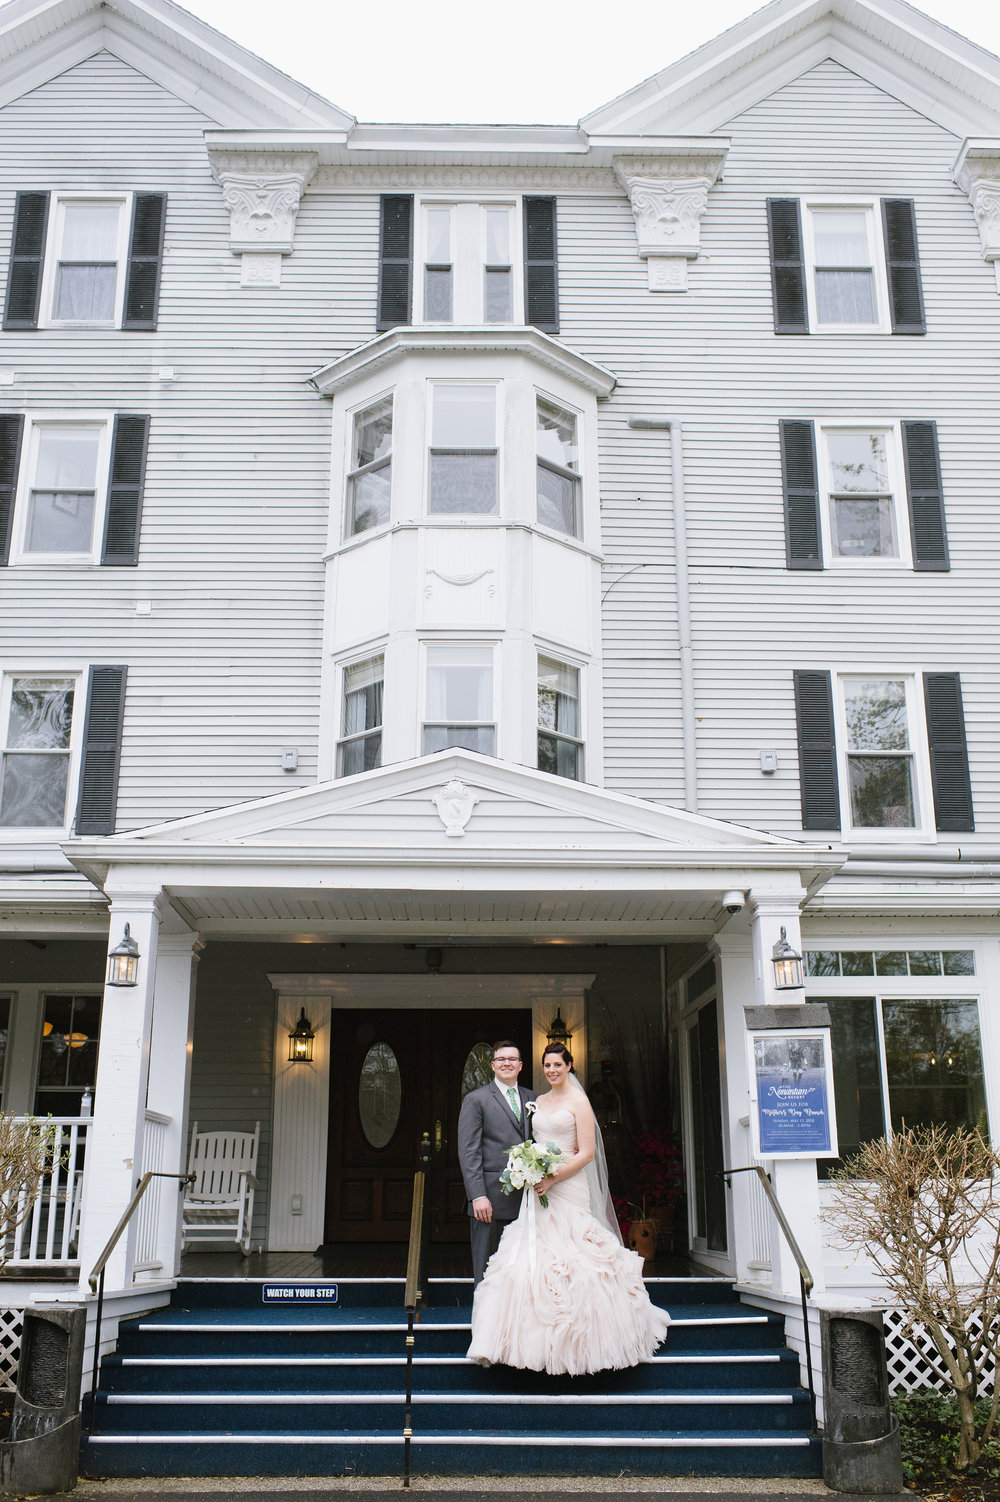 At the Nonantum Resort, Kennebunkport, Maine a Bride and Groom stand inside the entryway